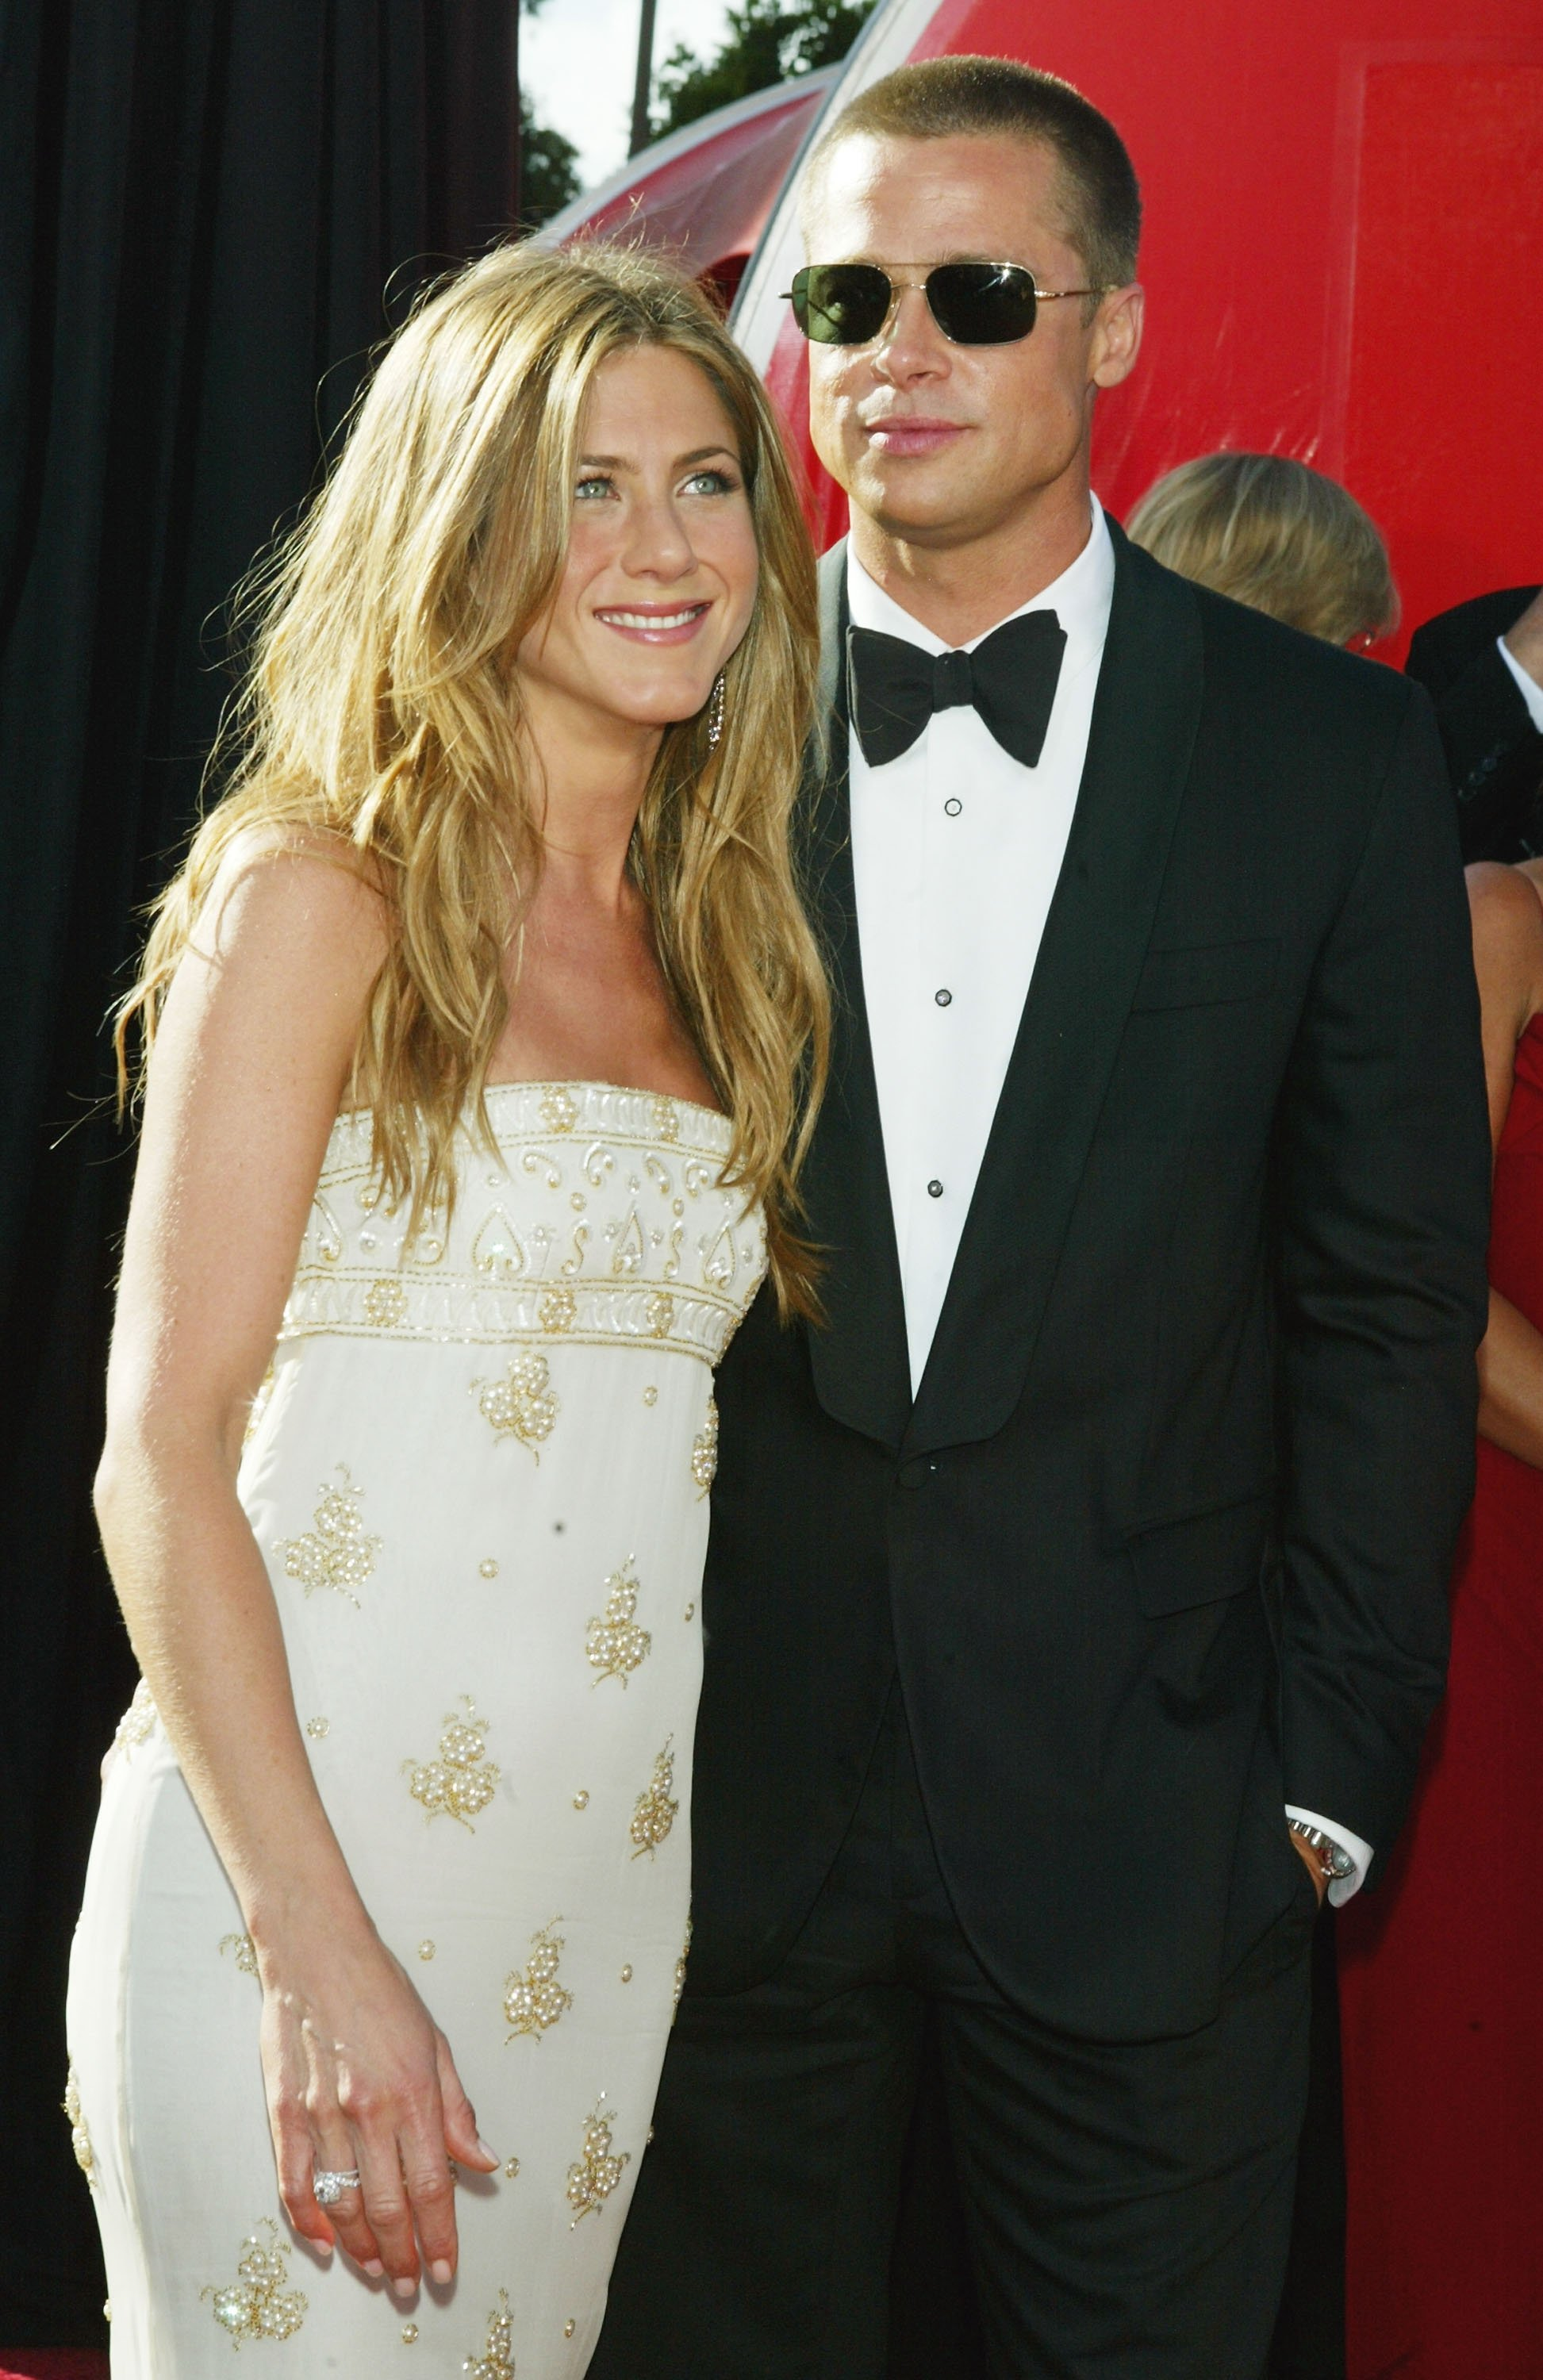 Jennifer Aniston and Brad Pitt attend the 56th Annual Primetime Emmy Awards on September 19, 2004. | Source: Getty Images